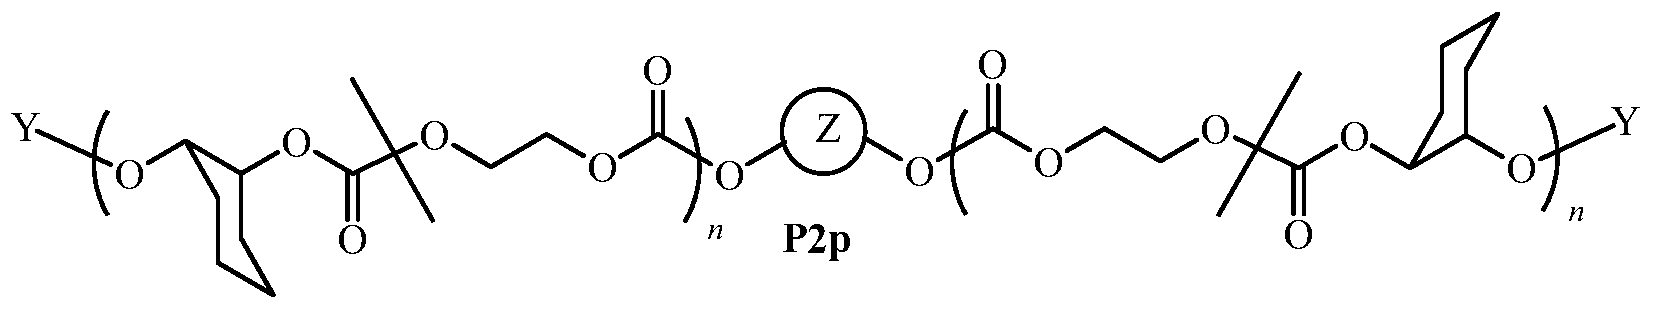 WO2013016331A2 - Polymer compositions and methods - Google